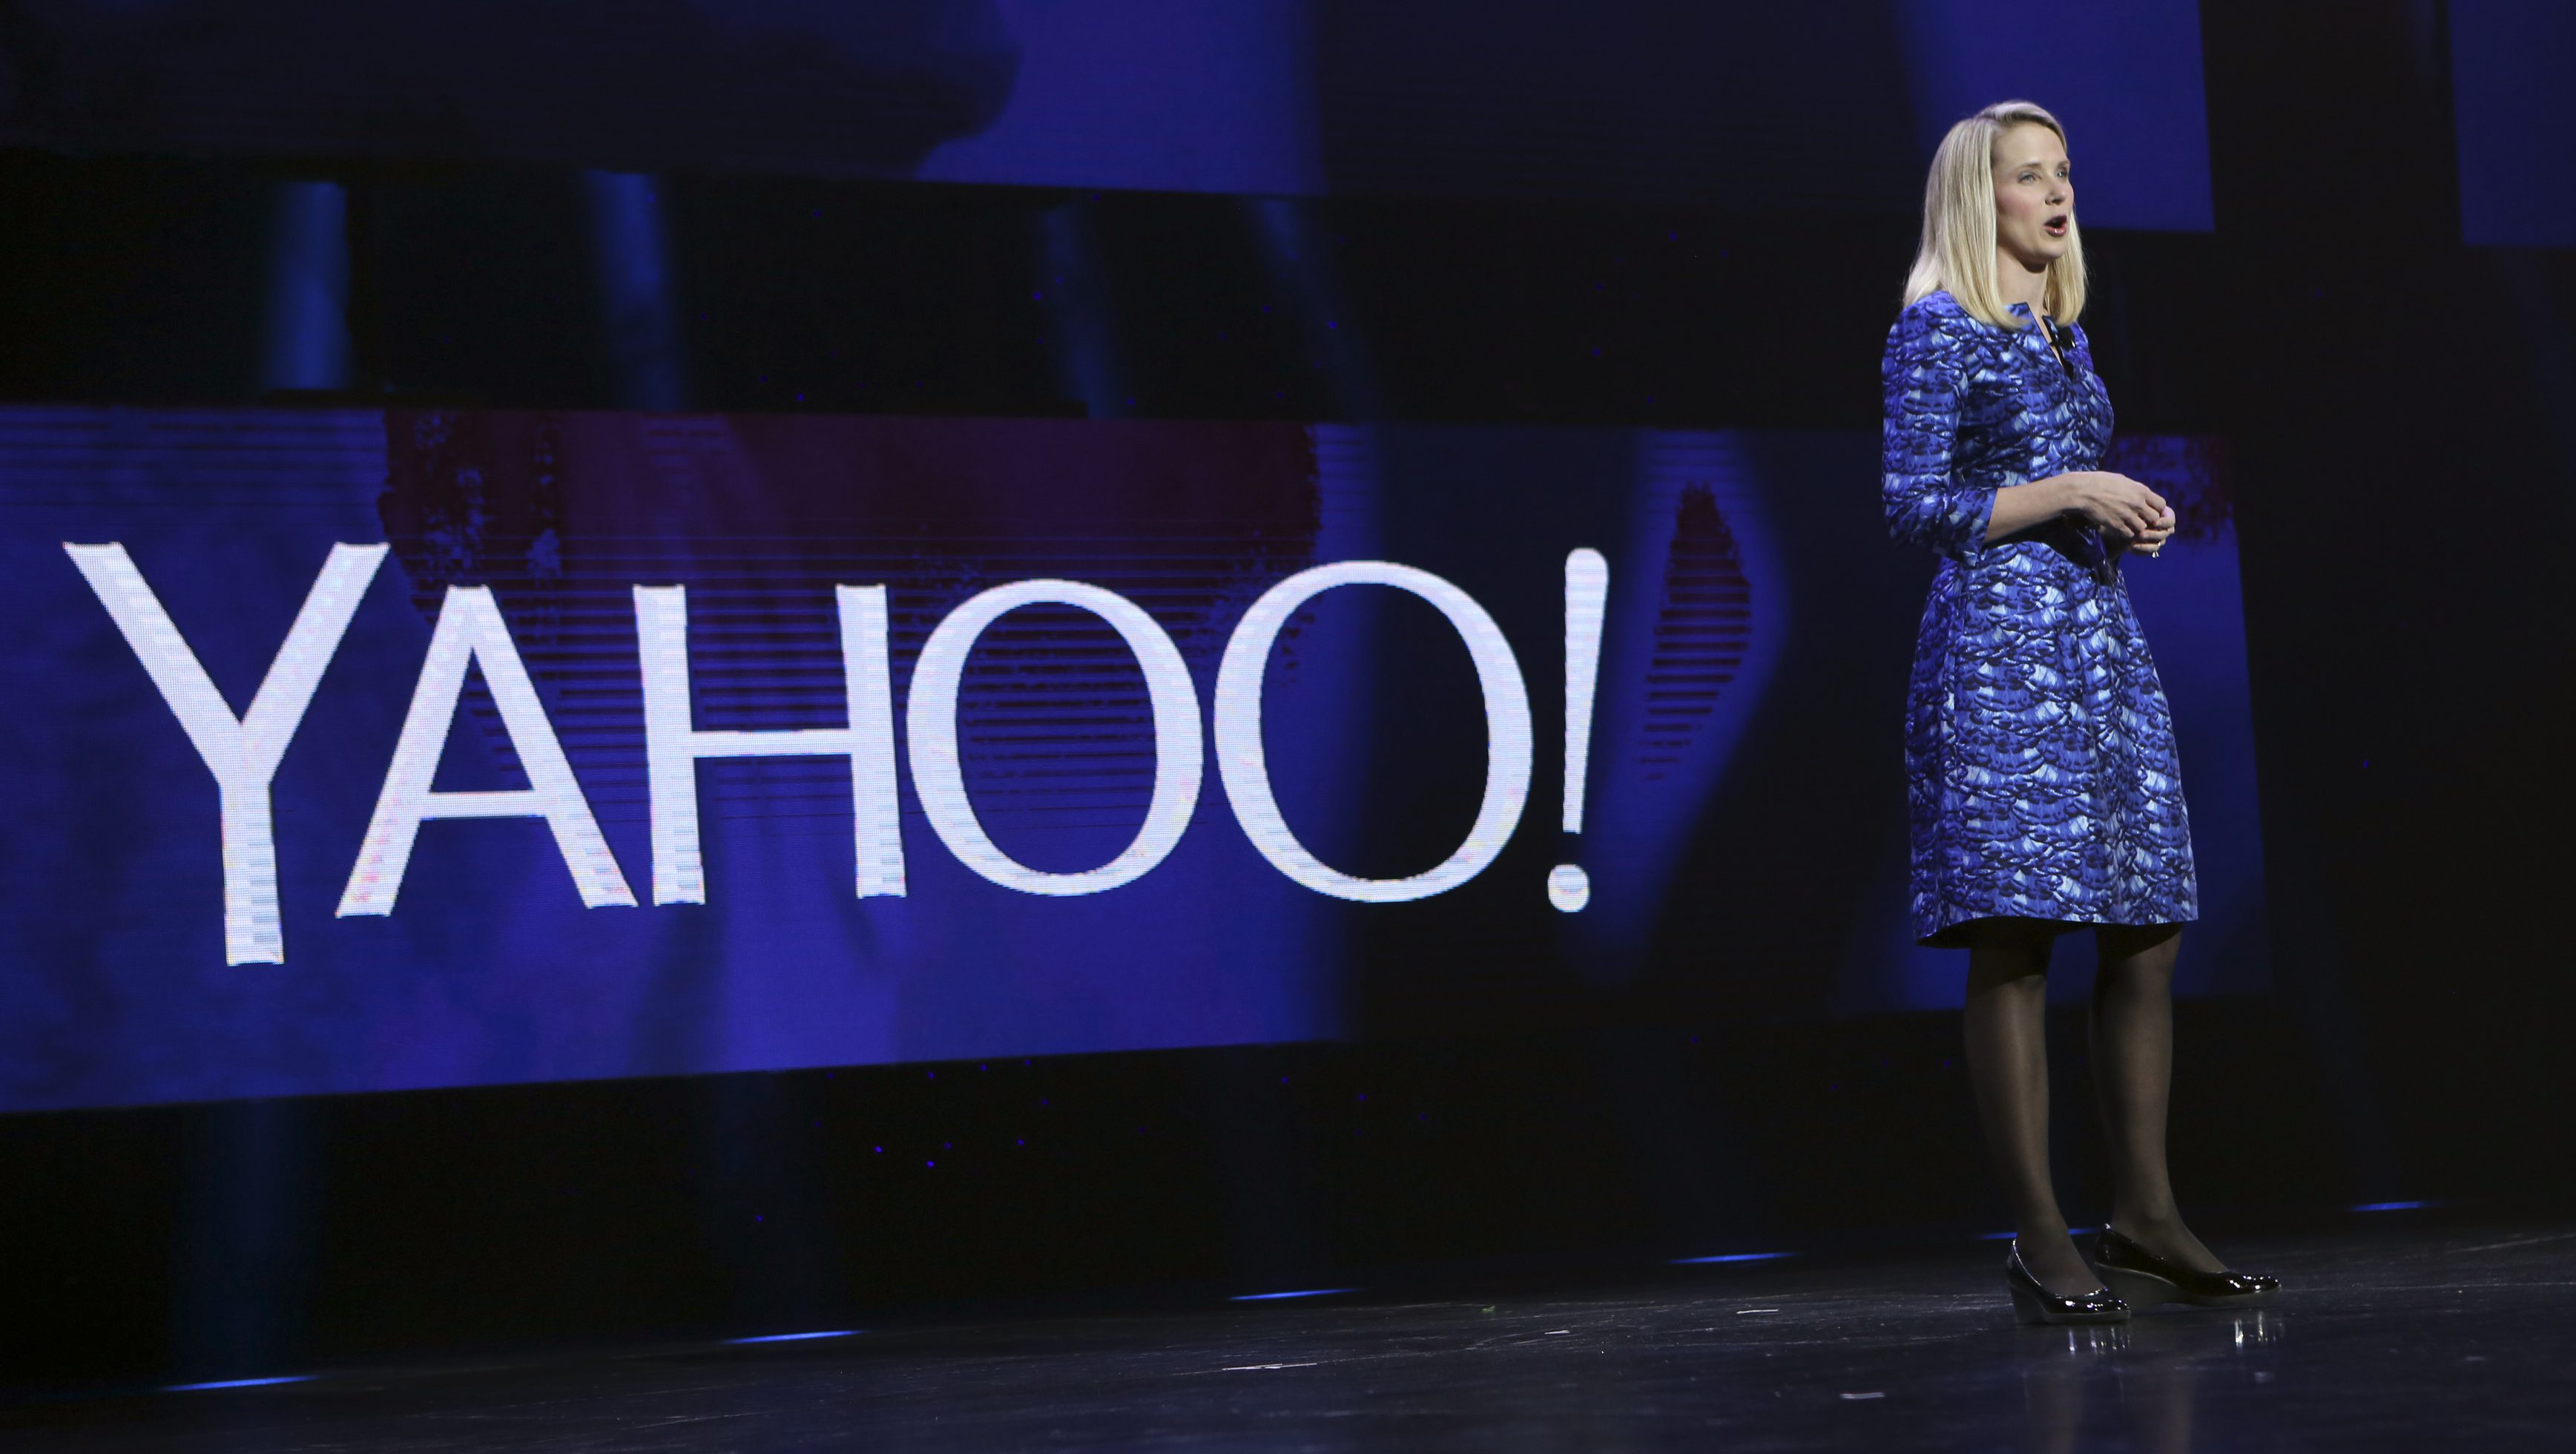 ahoo CEO Marissa Mayer delivers her keynote address at the annual Consumer Electronics Show (CES) in Las Vegas, Nevada January 7, 2014.